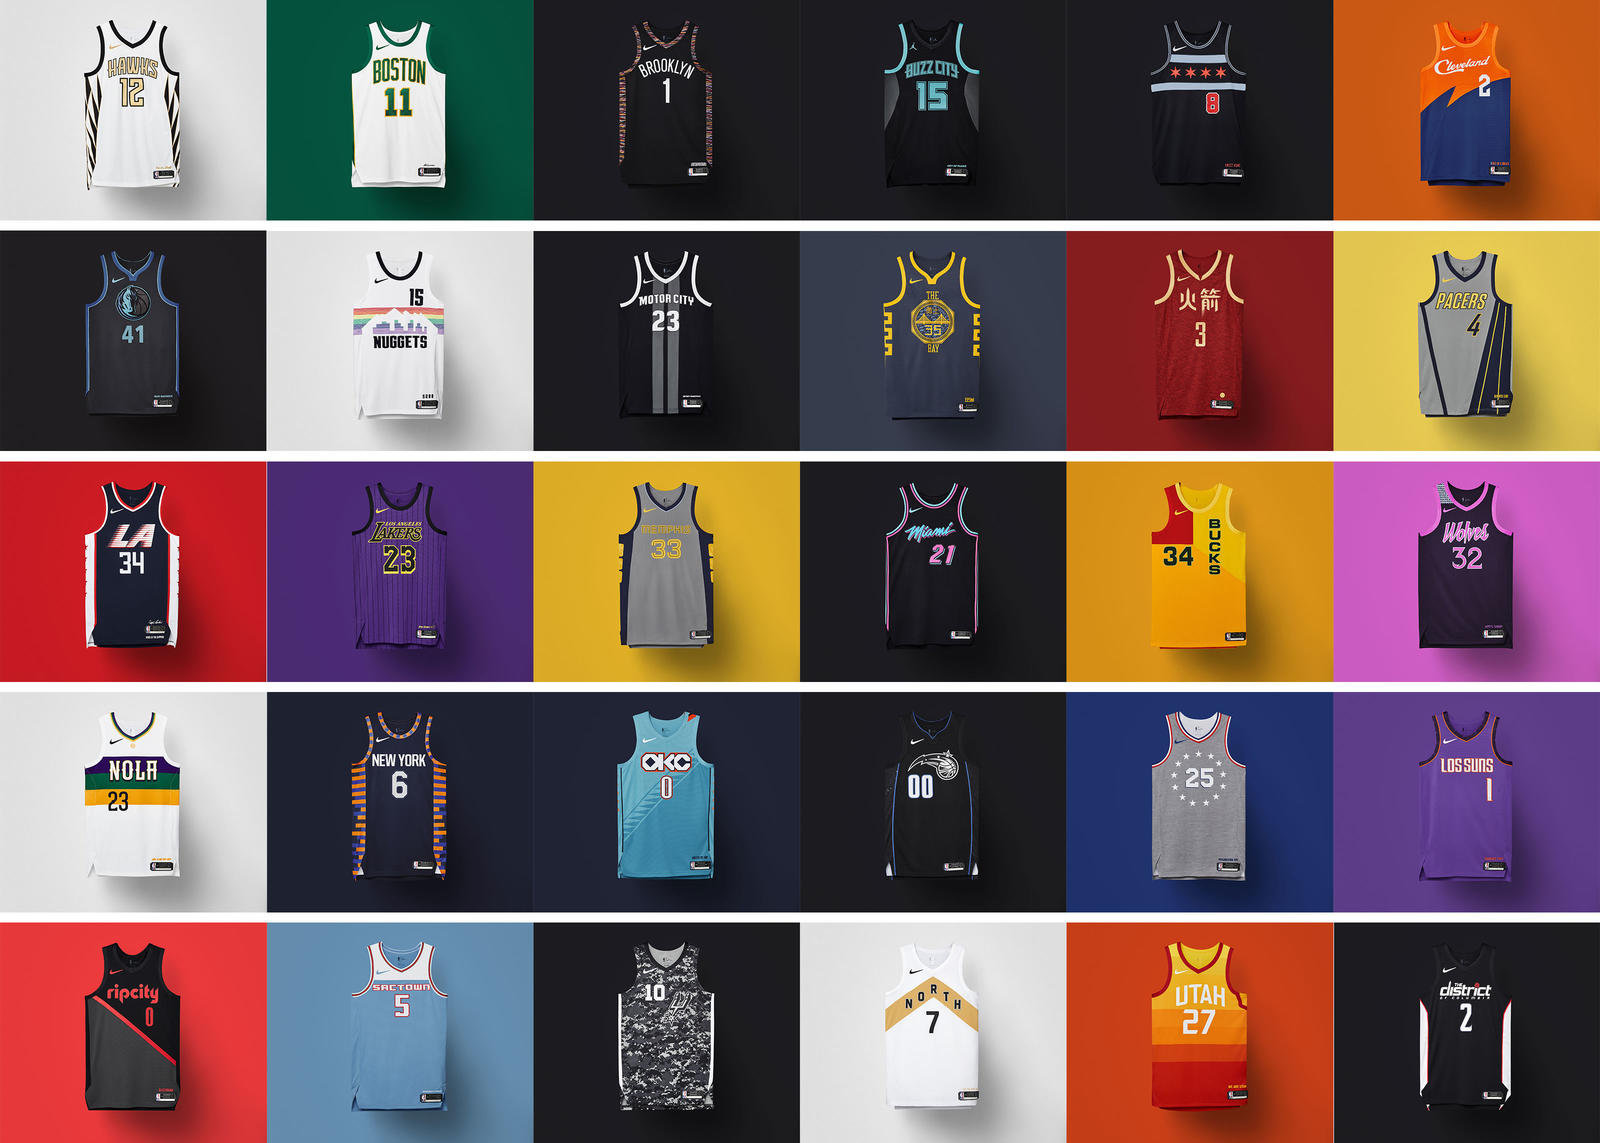 d45b8d94ce6 NBA City Edition Uniforms 2018-19  Brooklyn